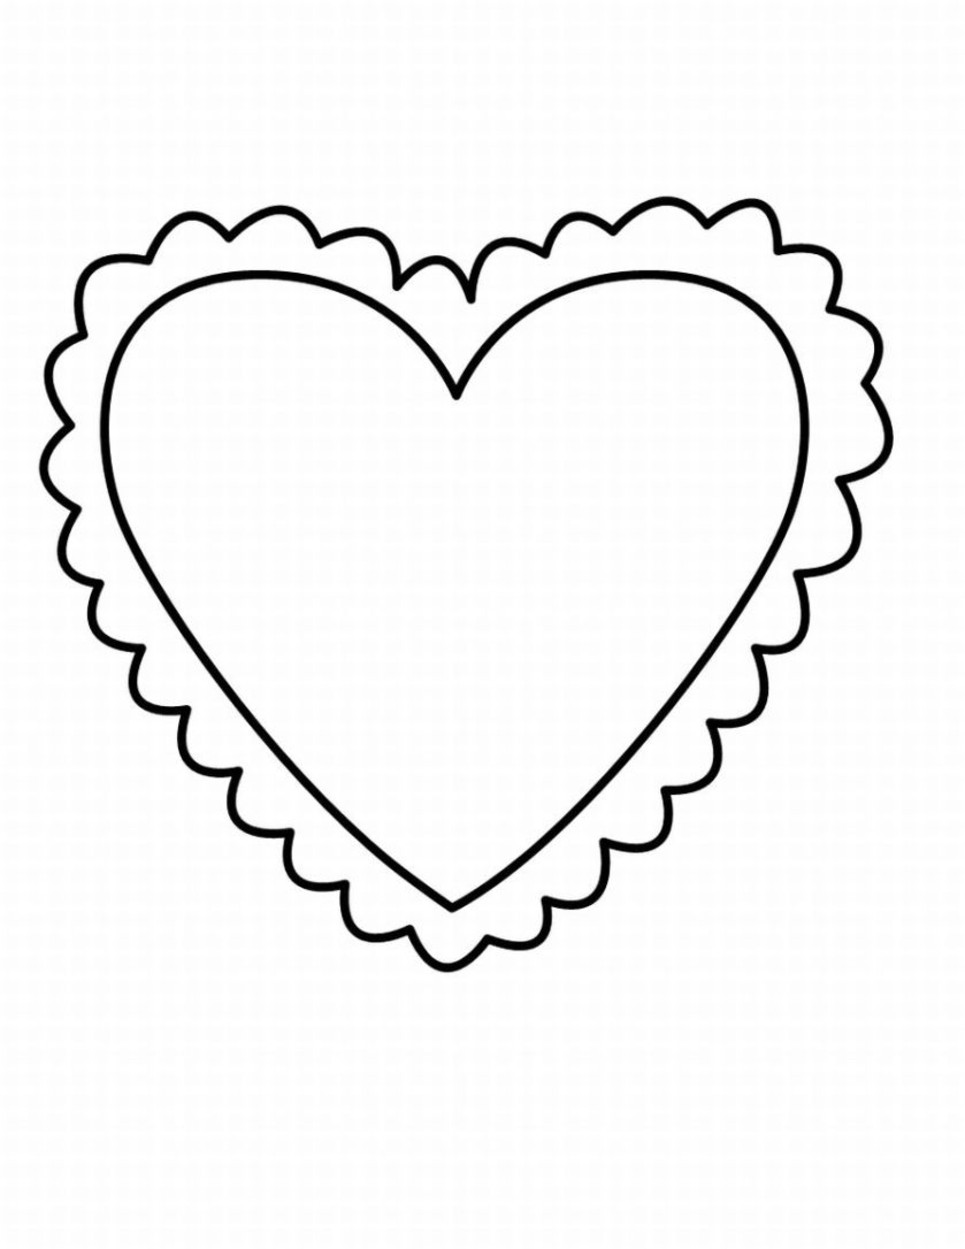 kids heart coloring pages free printable heart coloring pages for kids kids heart pages coloring